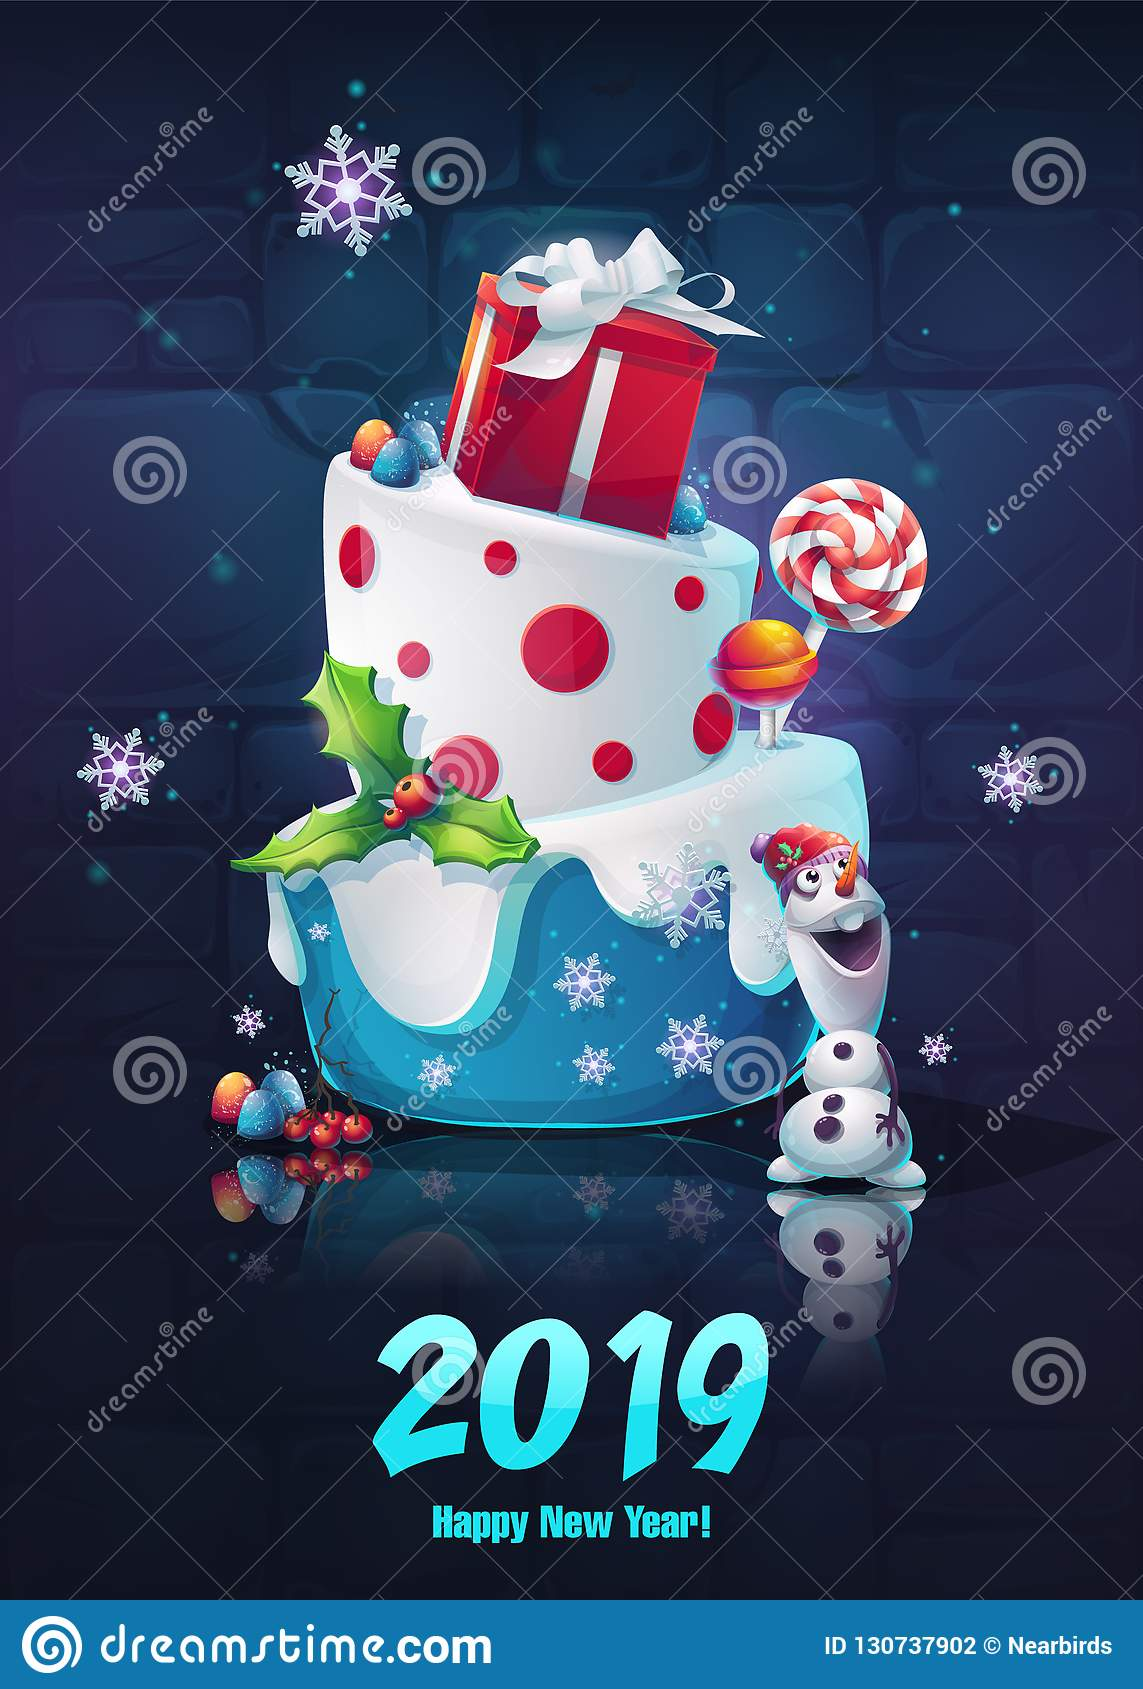 Festive Set - Happy New Year Stock Vector - Illustration of cartoon ...